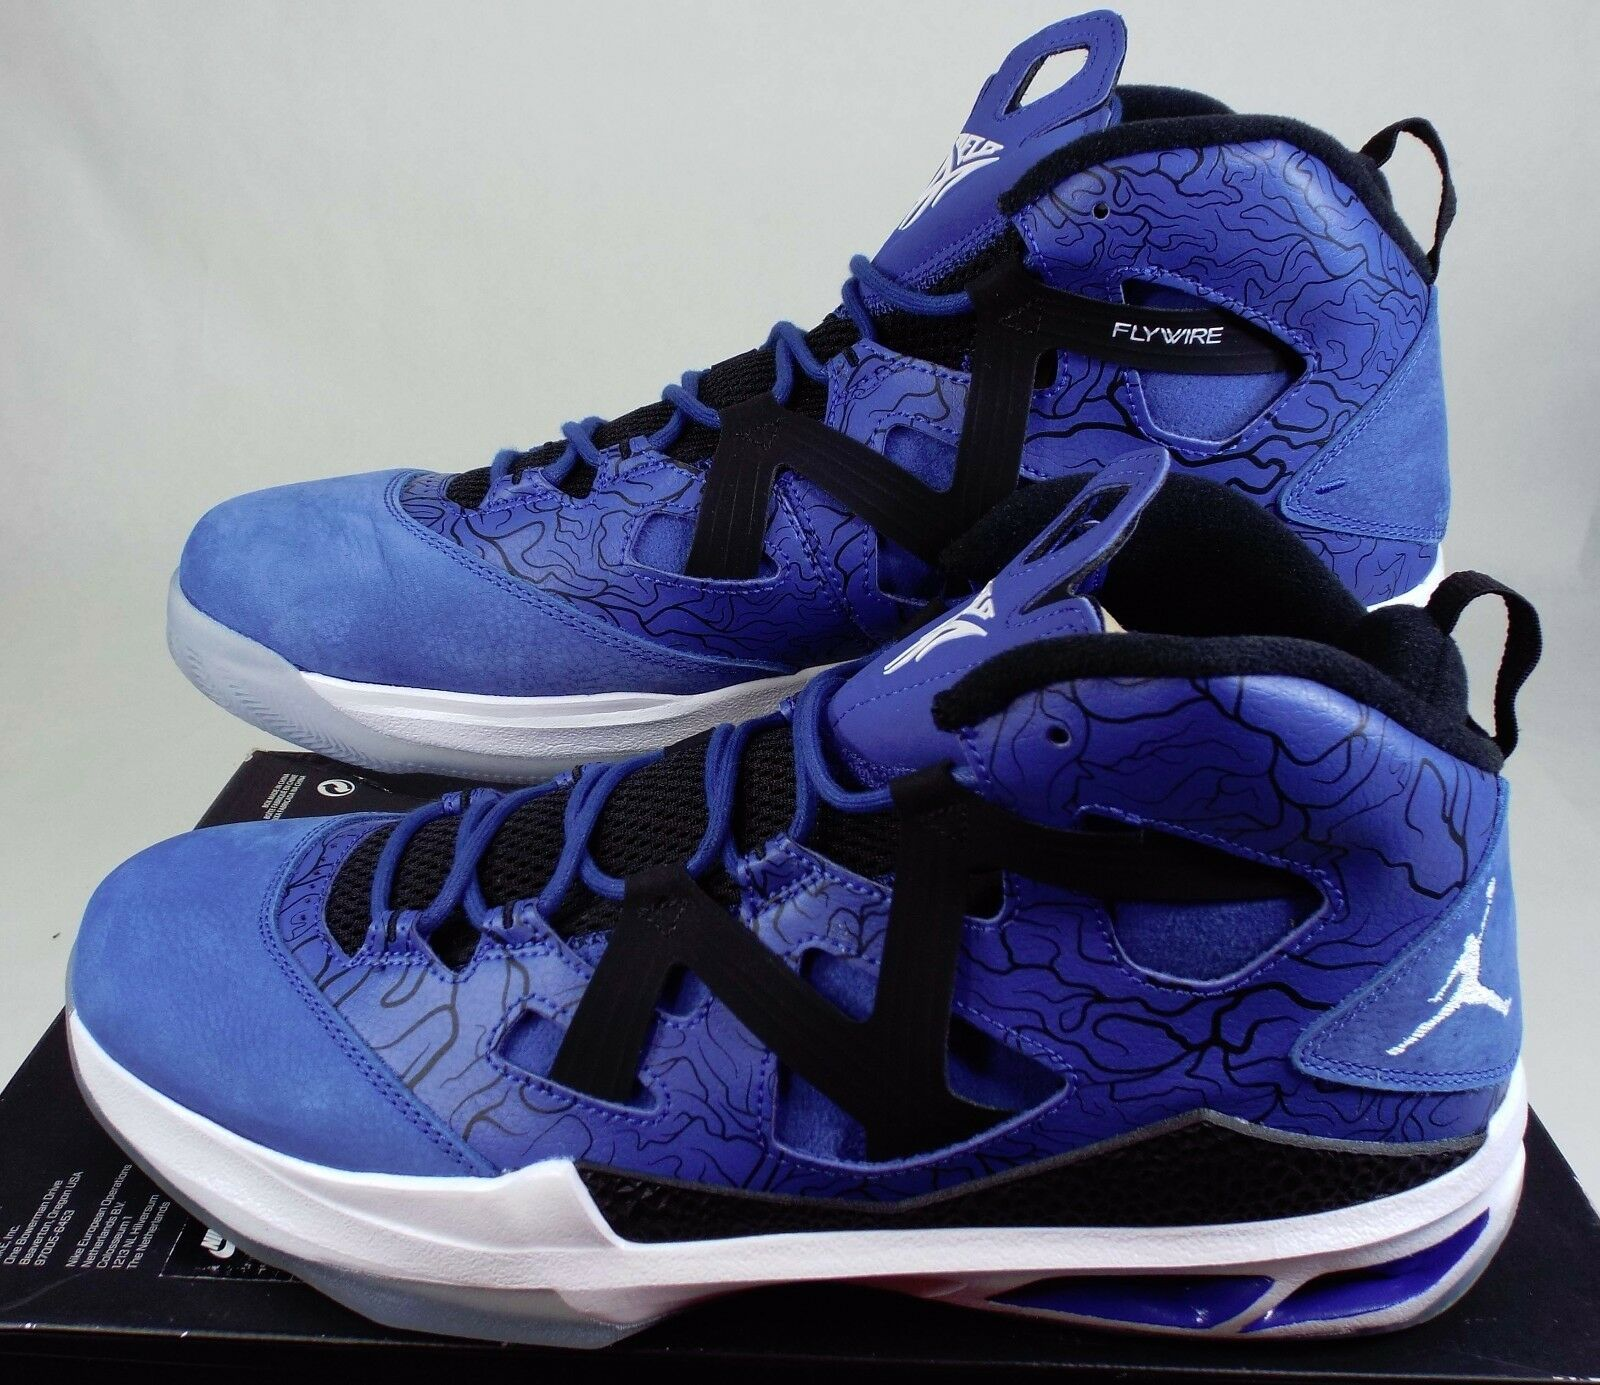 New Hombre 13 Nike Jordan Melo M9 price juego Royal Azul Shoes price M9 reduction Wild Casual Shoes 961a89